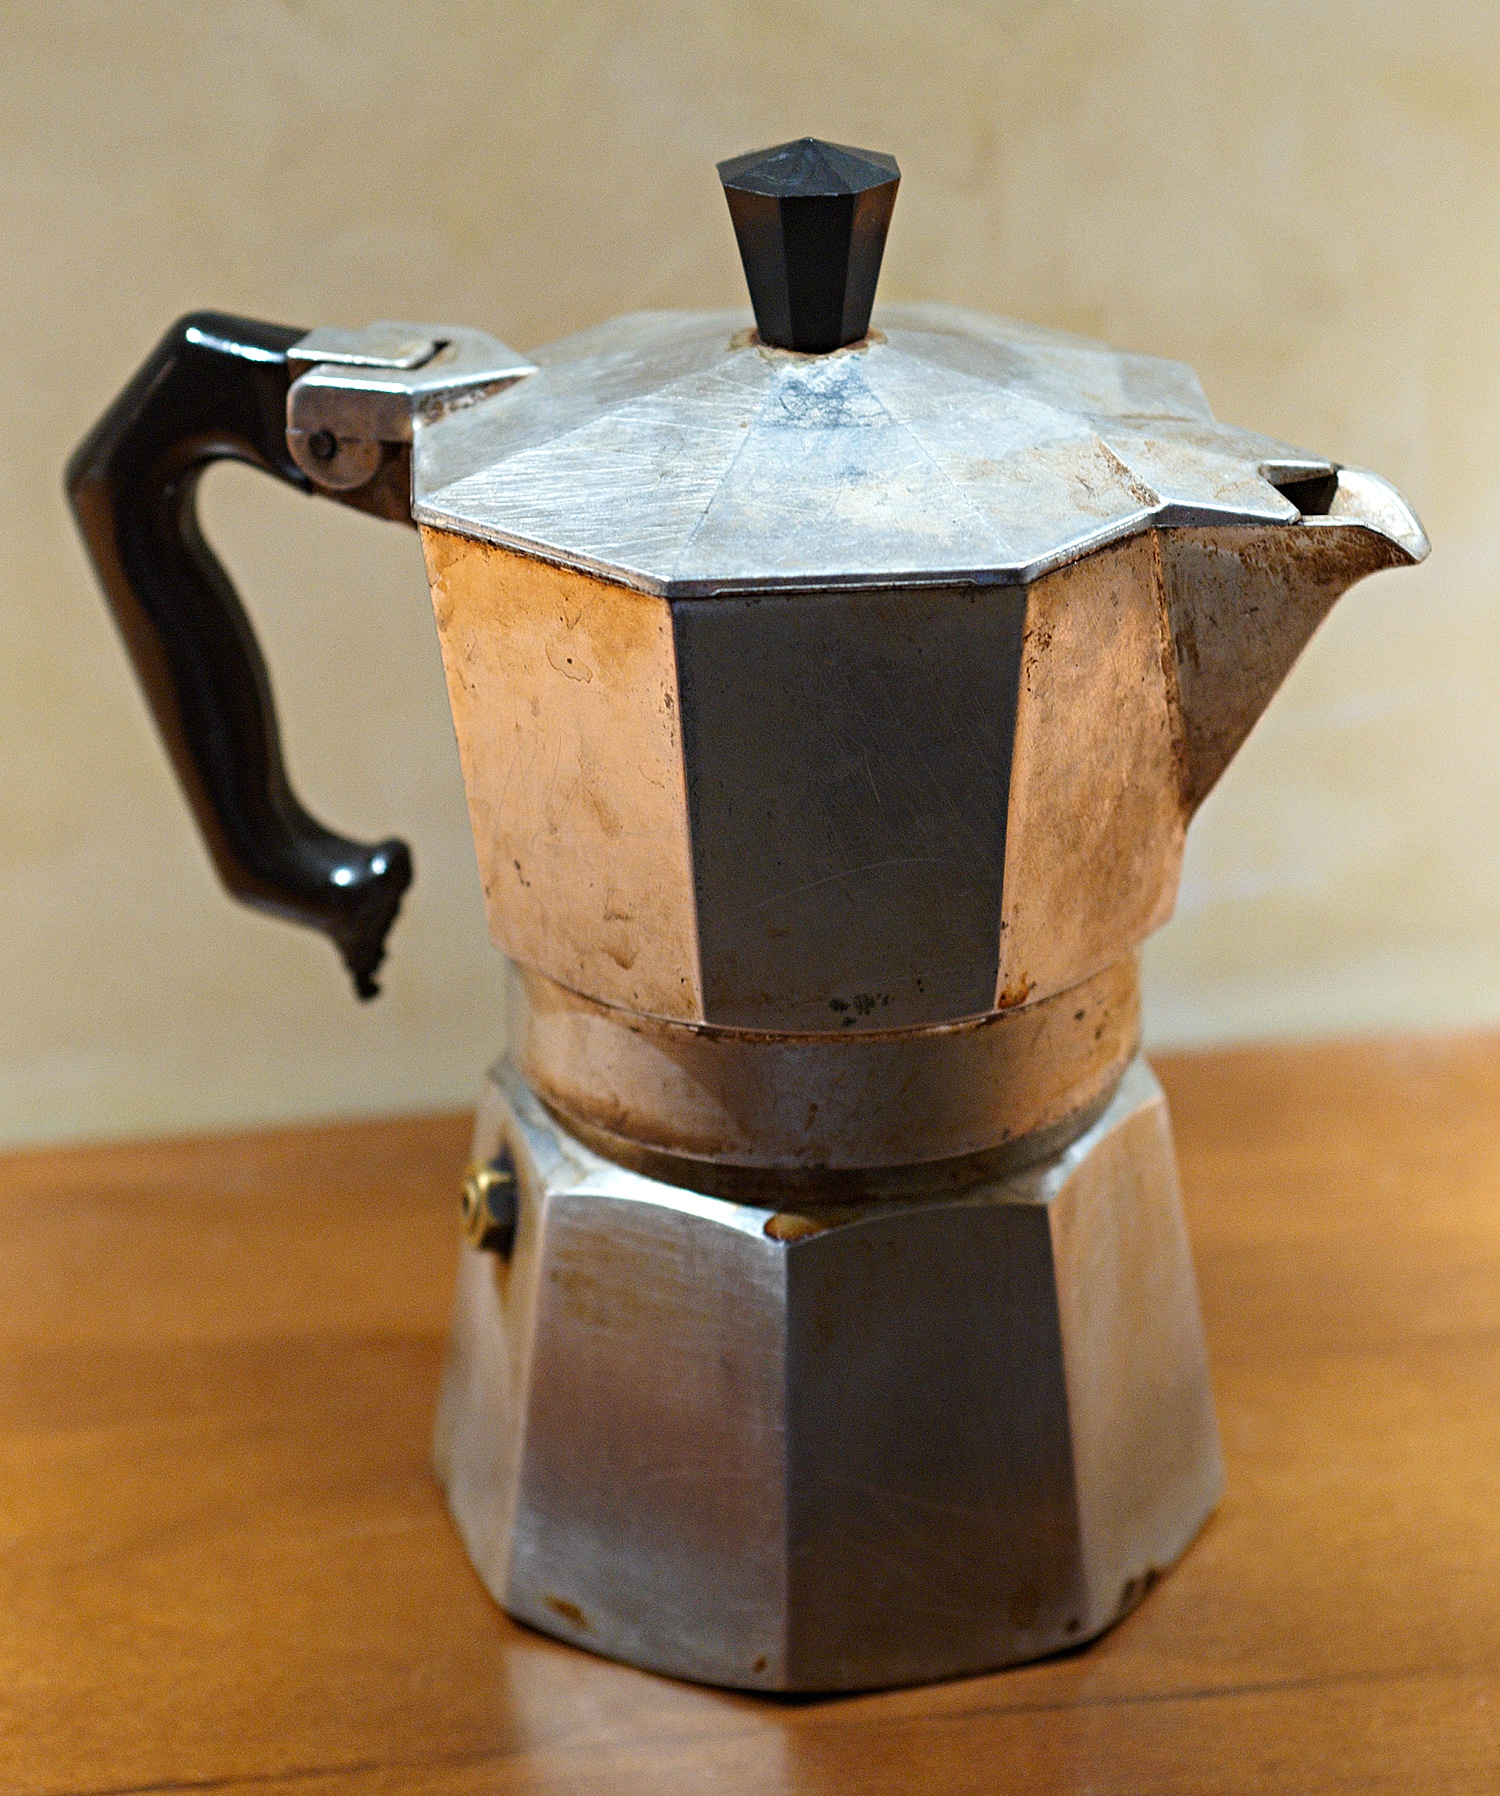 Old School Spanish Coffee Maker : File:Moka2.jpg - Wikimedia Commons